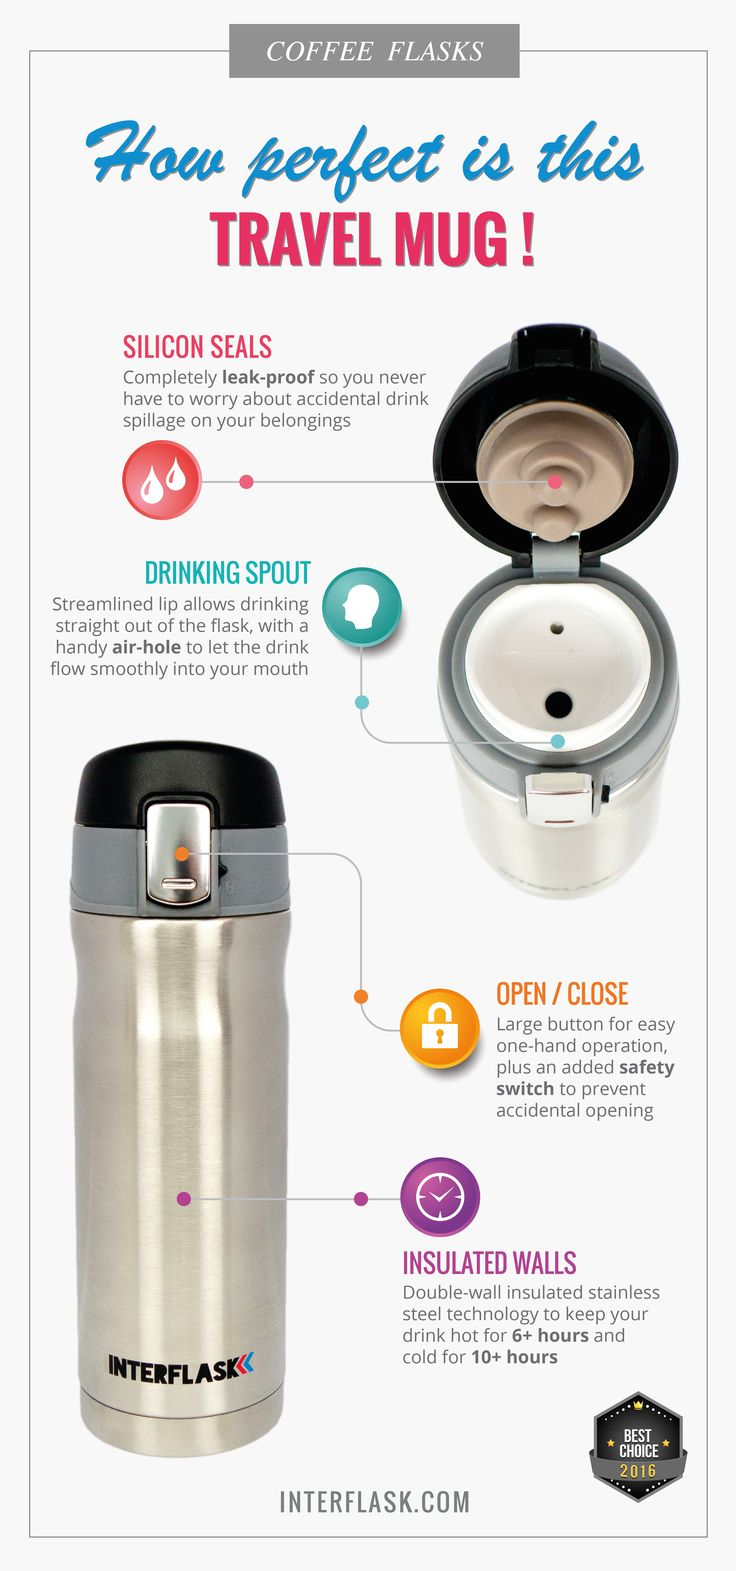 Interflask leakproof travel mug. https://www.giftful.co.uk/gift/leakproof-travel-mug-by-interflask-insulated-stainless-steel/